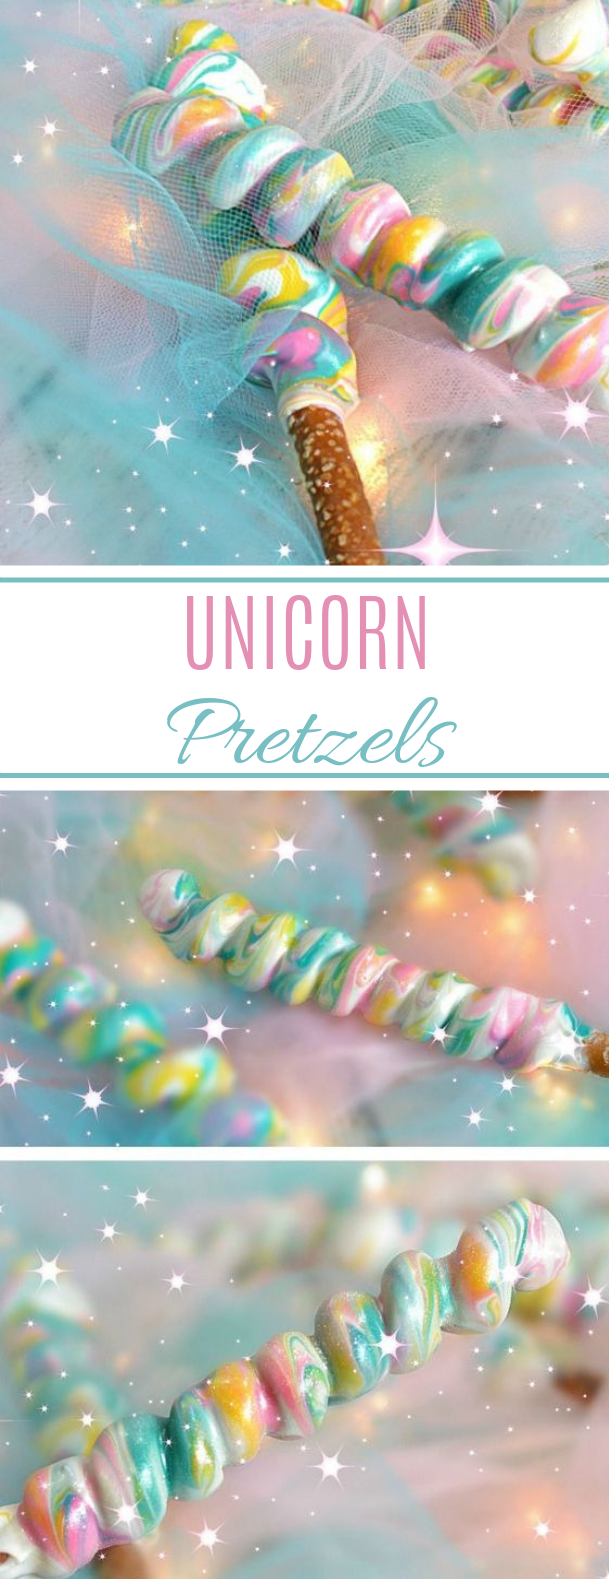 Unicorn Pretzels #party #desserts